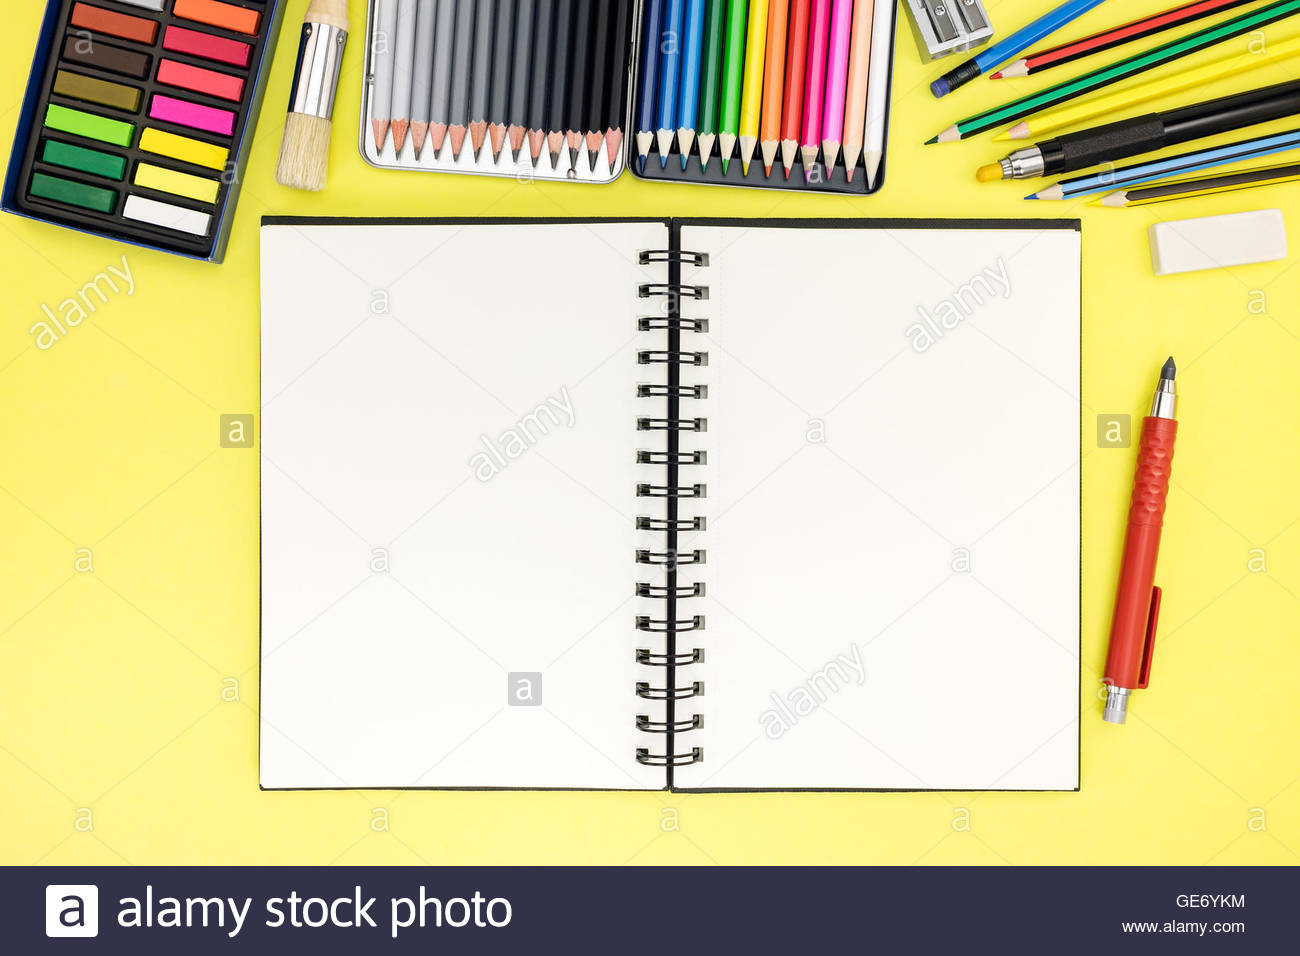 1300x956 Student Desk Background With Notepad And Stationary For Writing